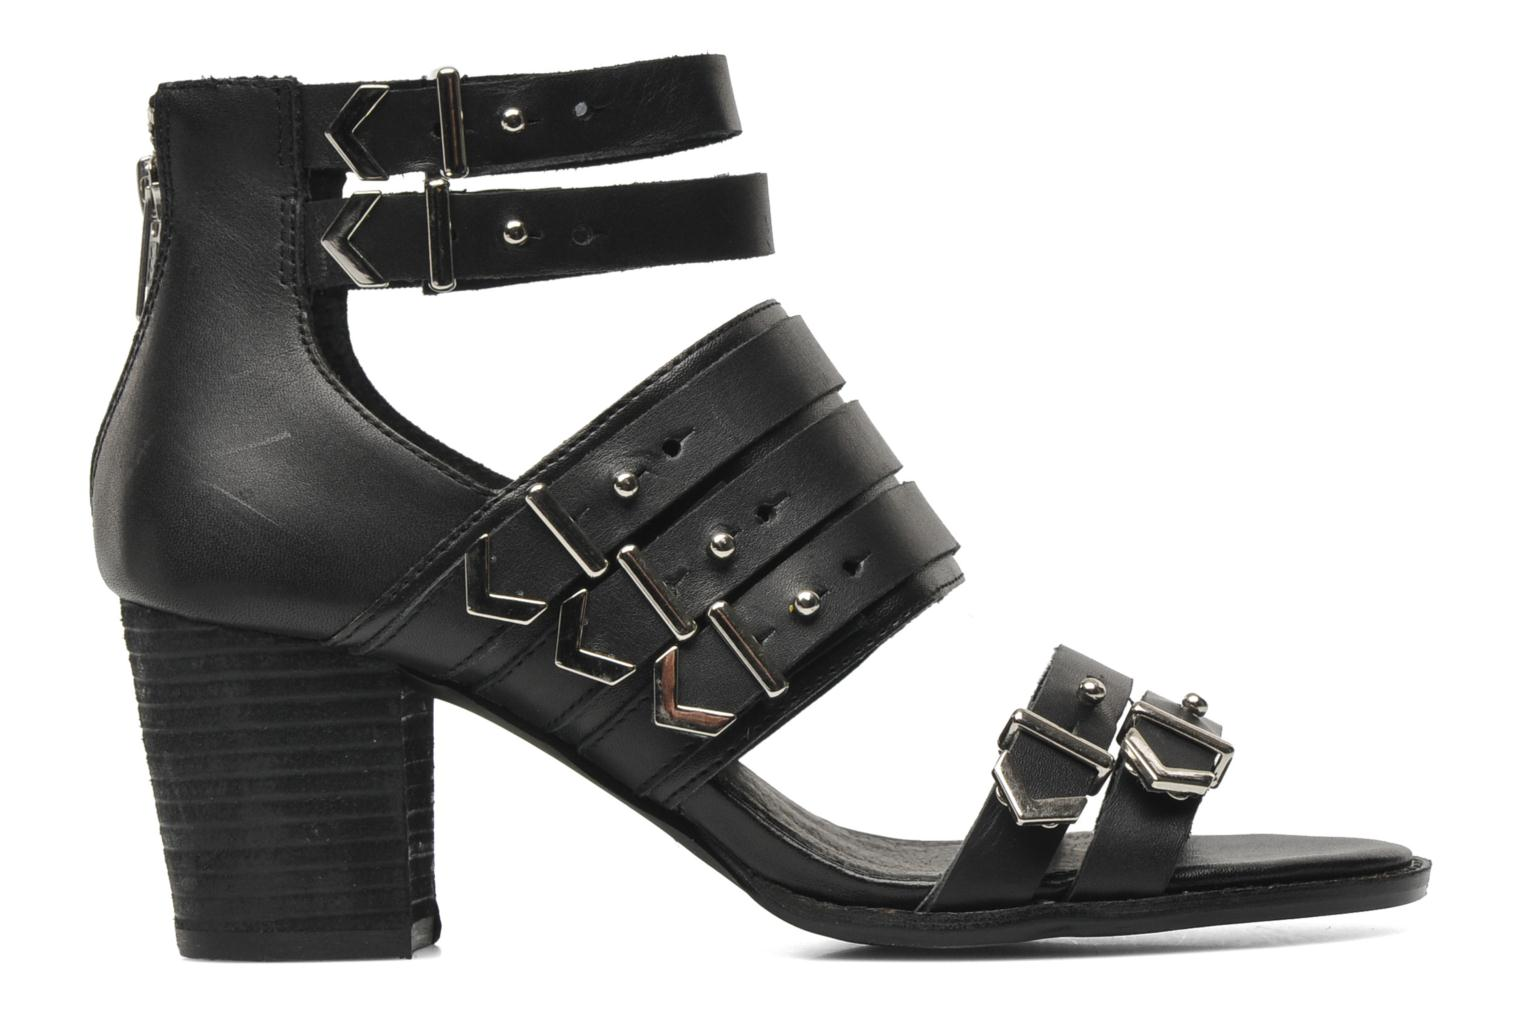 VALVORI Black leather